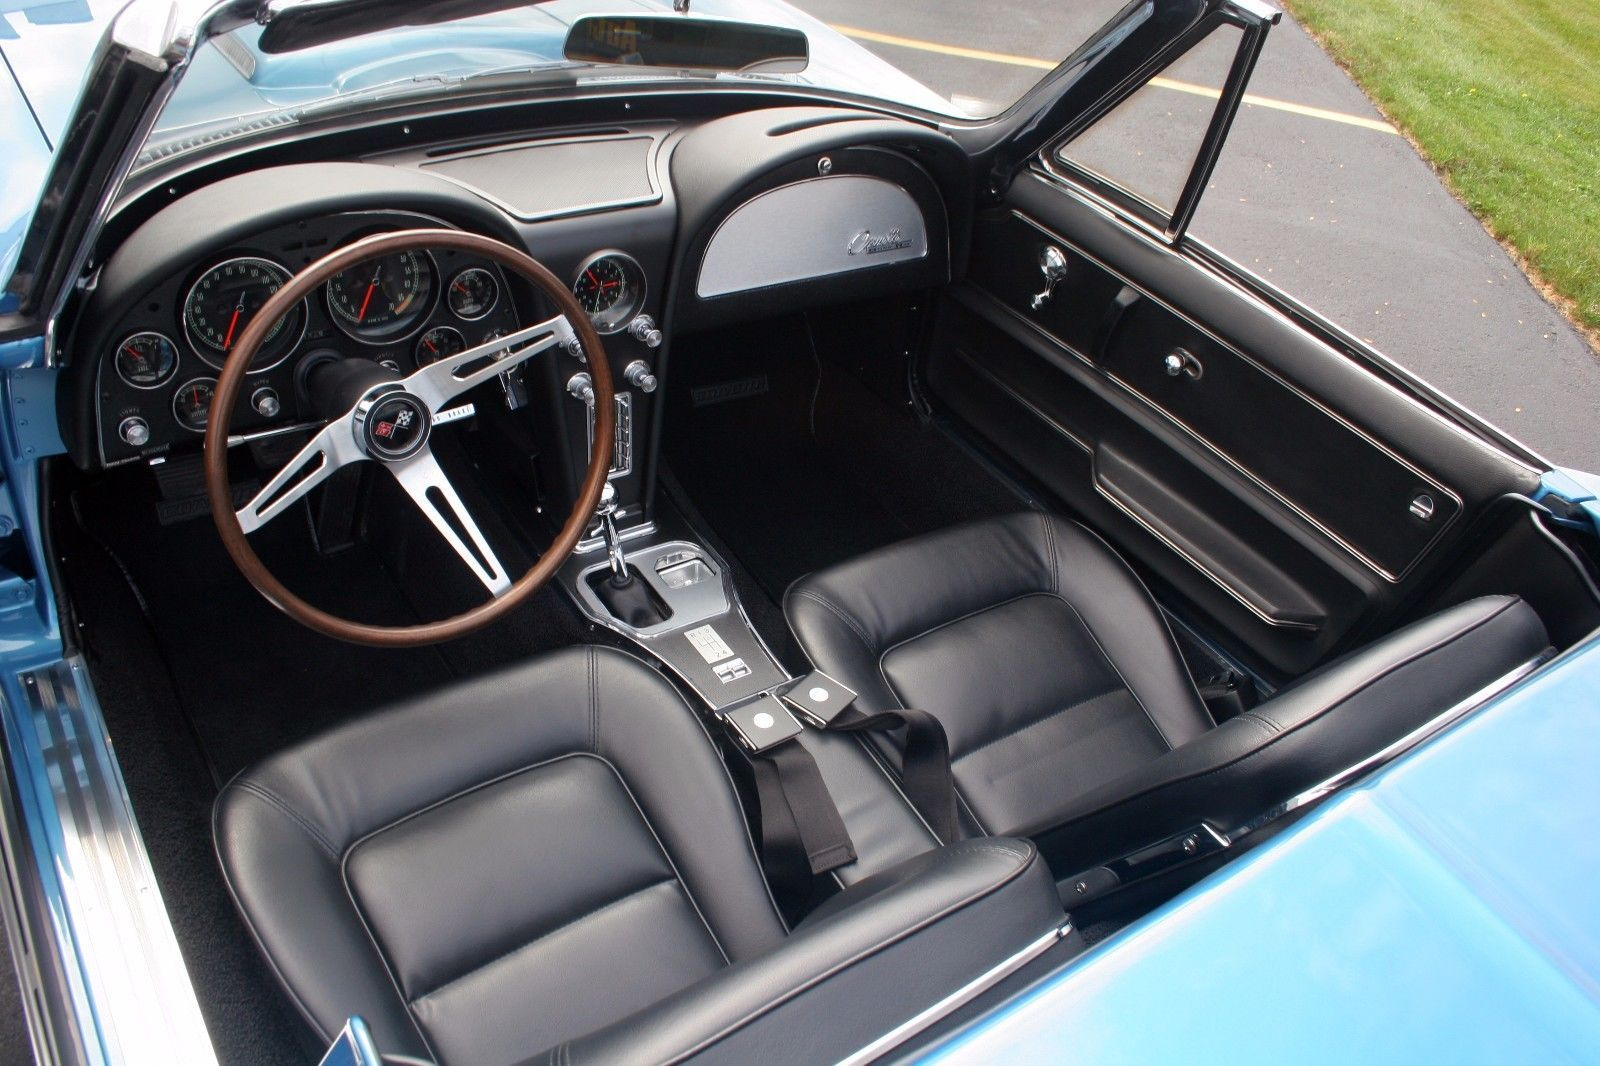 Primary image for 1965 CORVETTE CONVERTIBLE interior 24X36 inch poster, sports car, muscle car